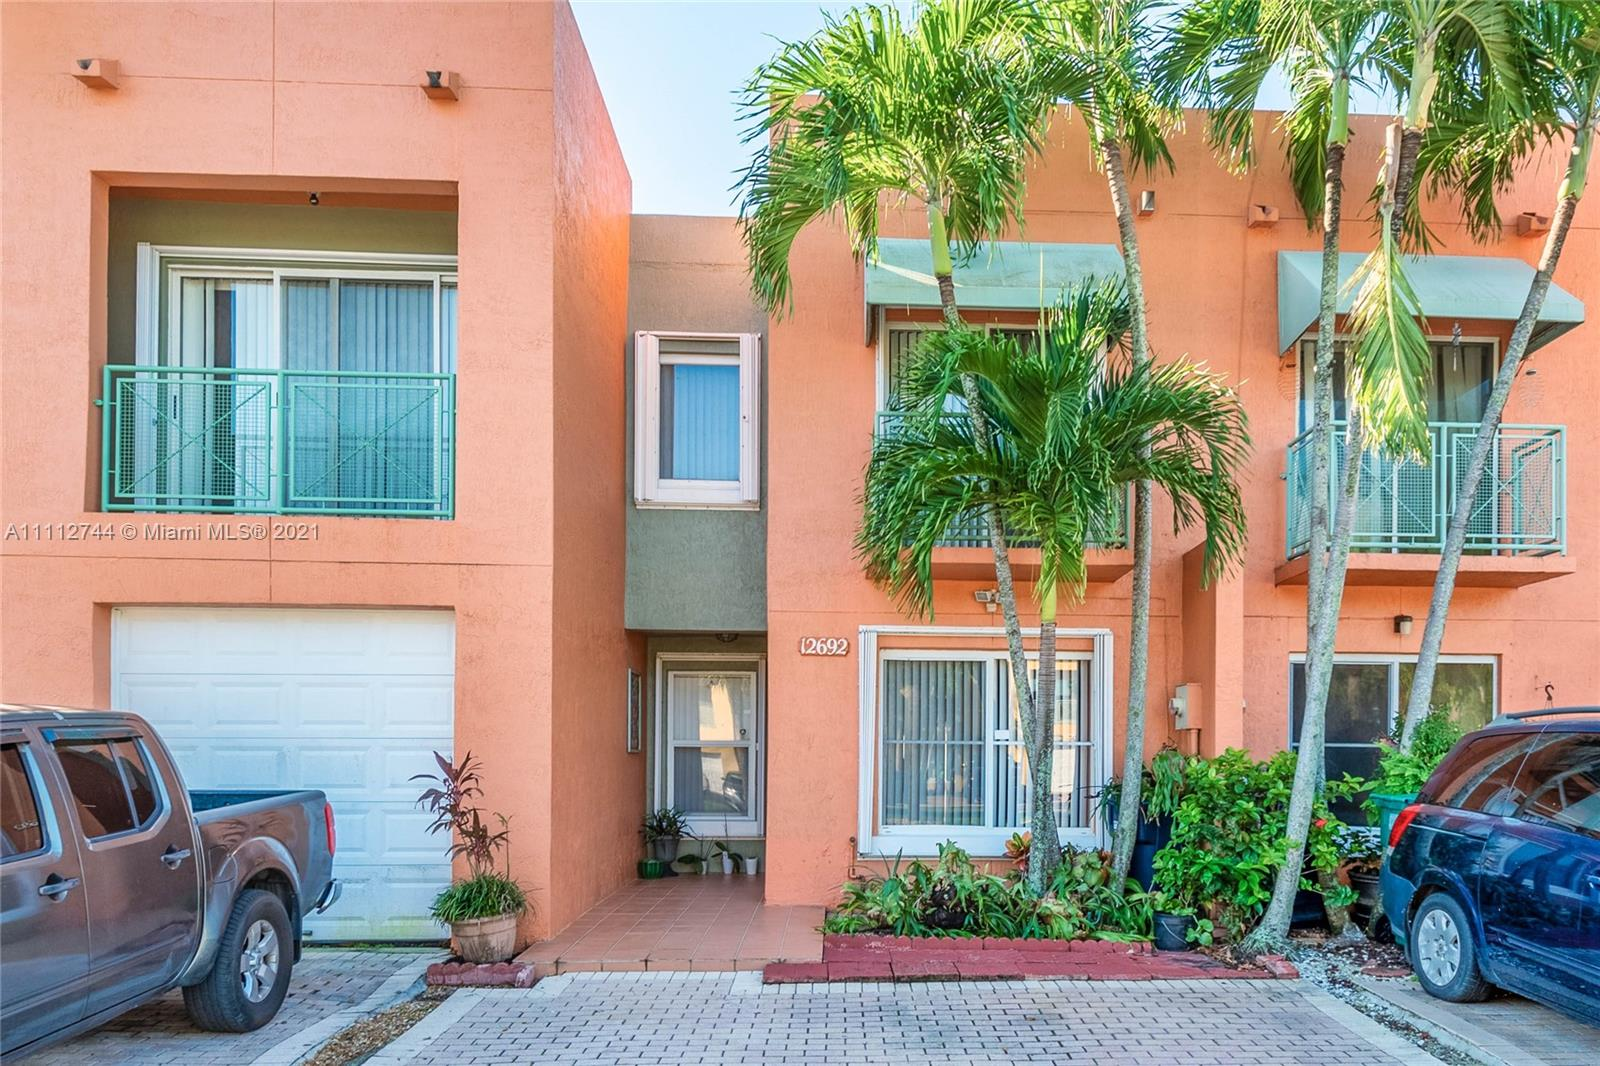 12692 NW 11th Ln  For Sale A11112744, FL